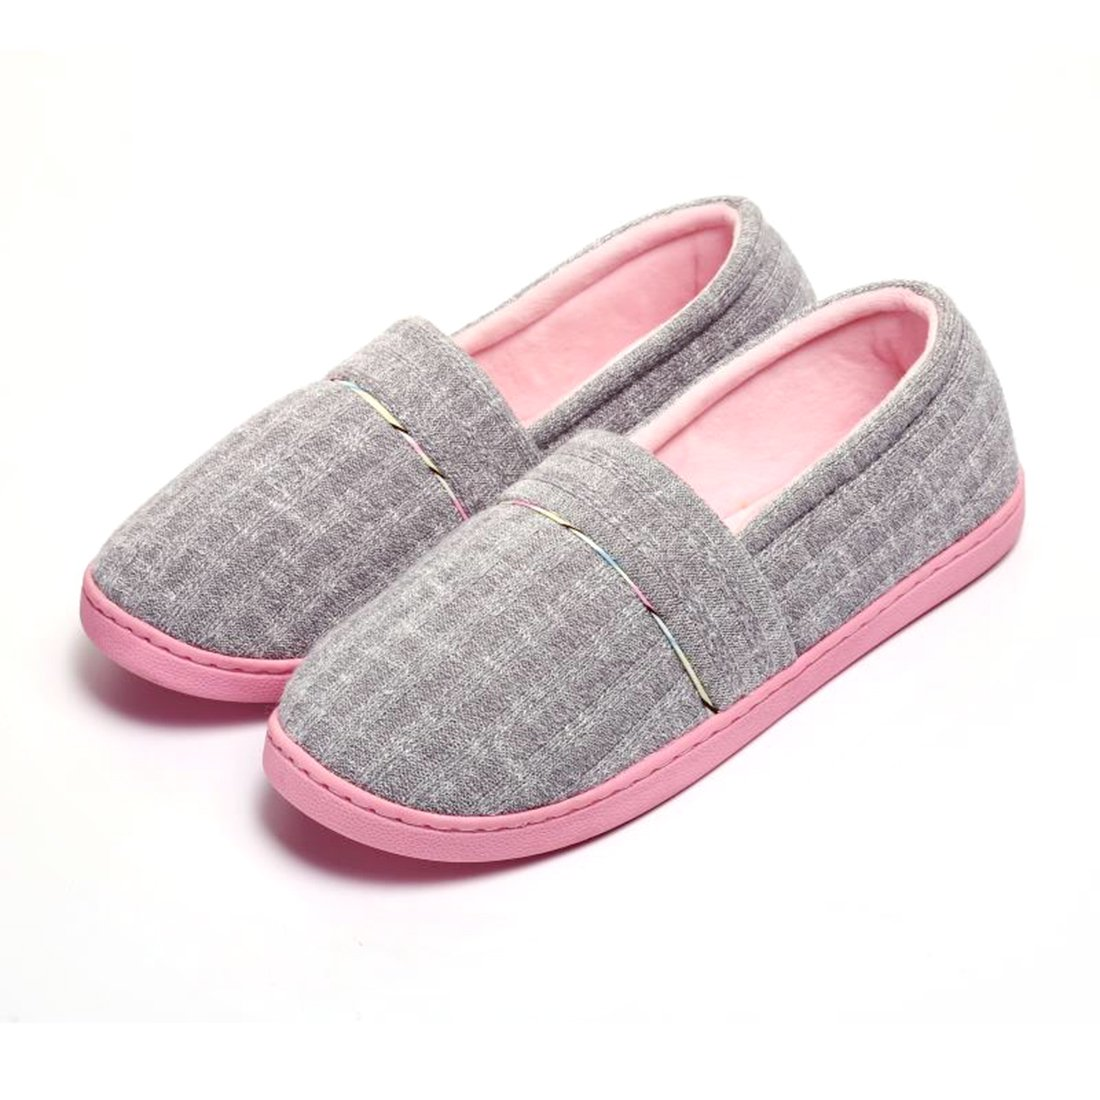 Cellicigal Women Cotton Knit Anti-Slip Comfort Indoor Slippers Slip-On Bedroom Home Shoes (6-6.5, Grey)